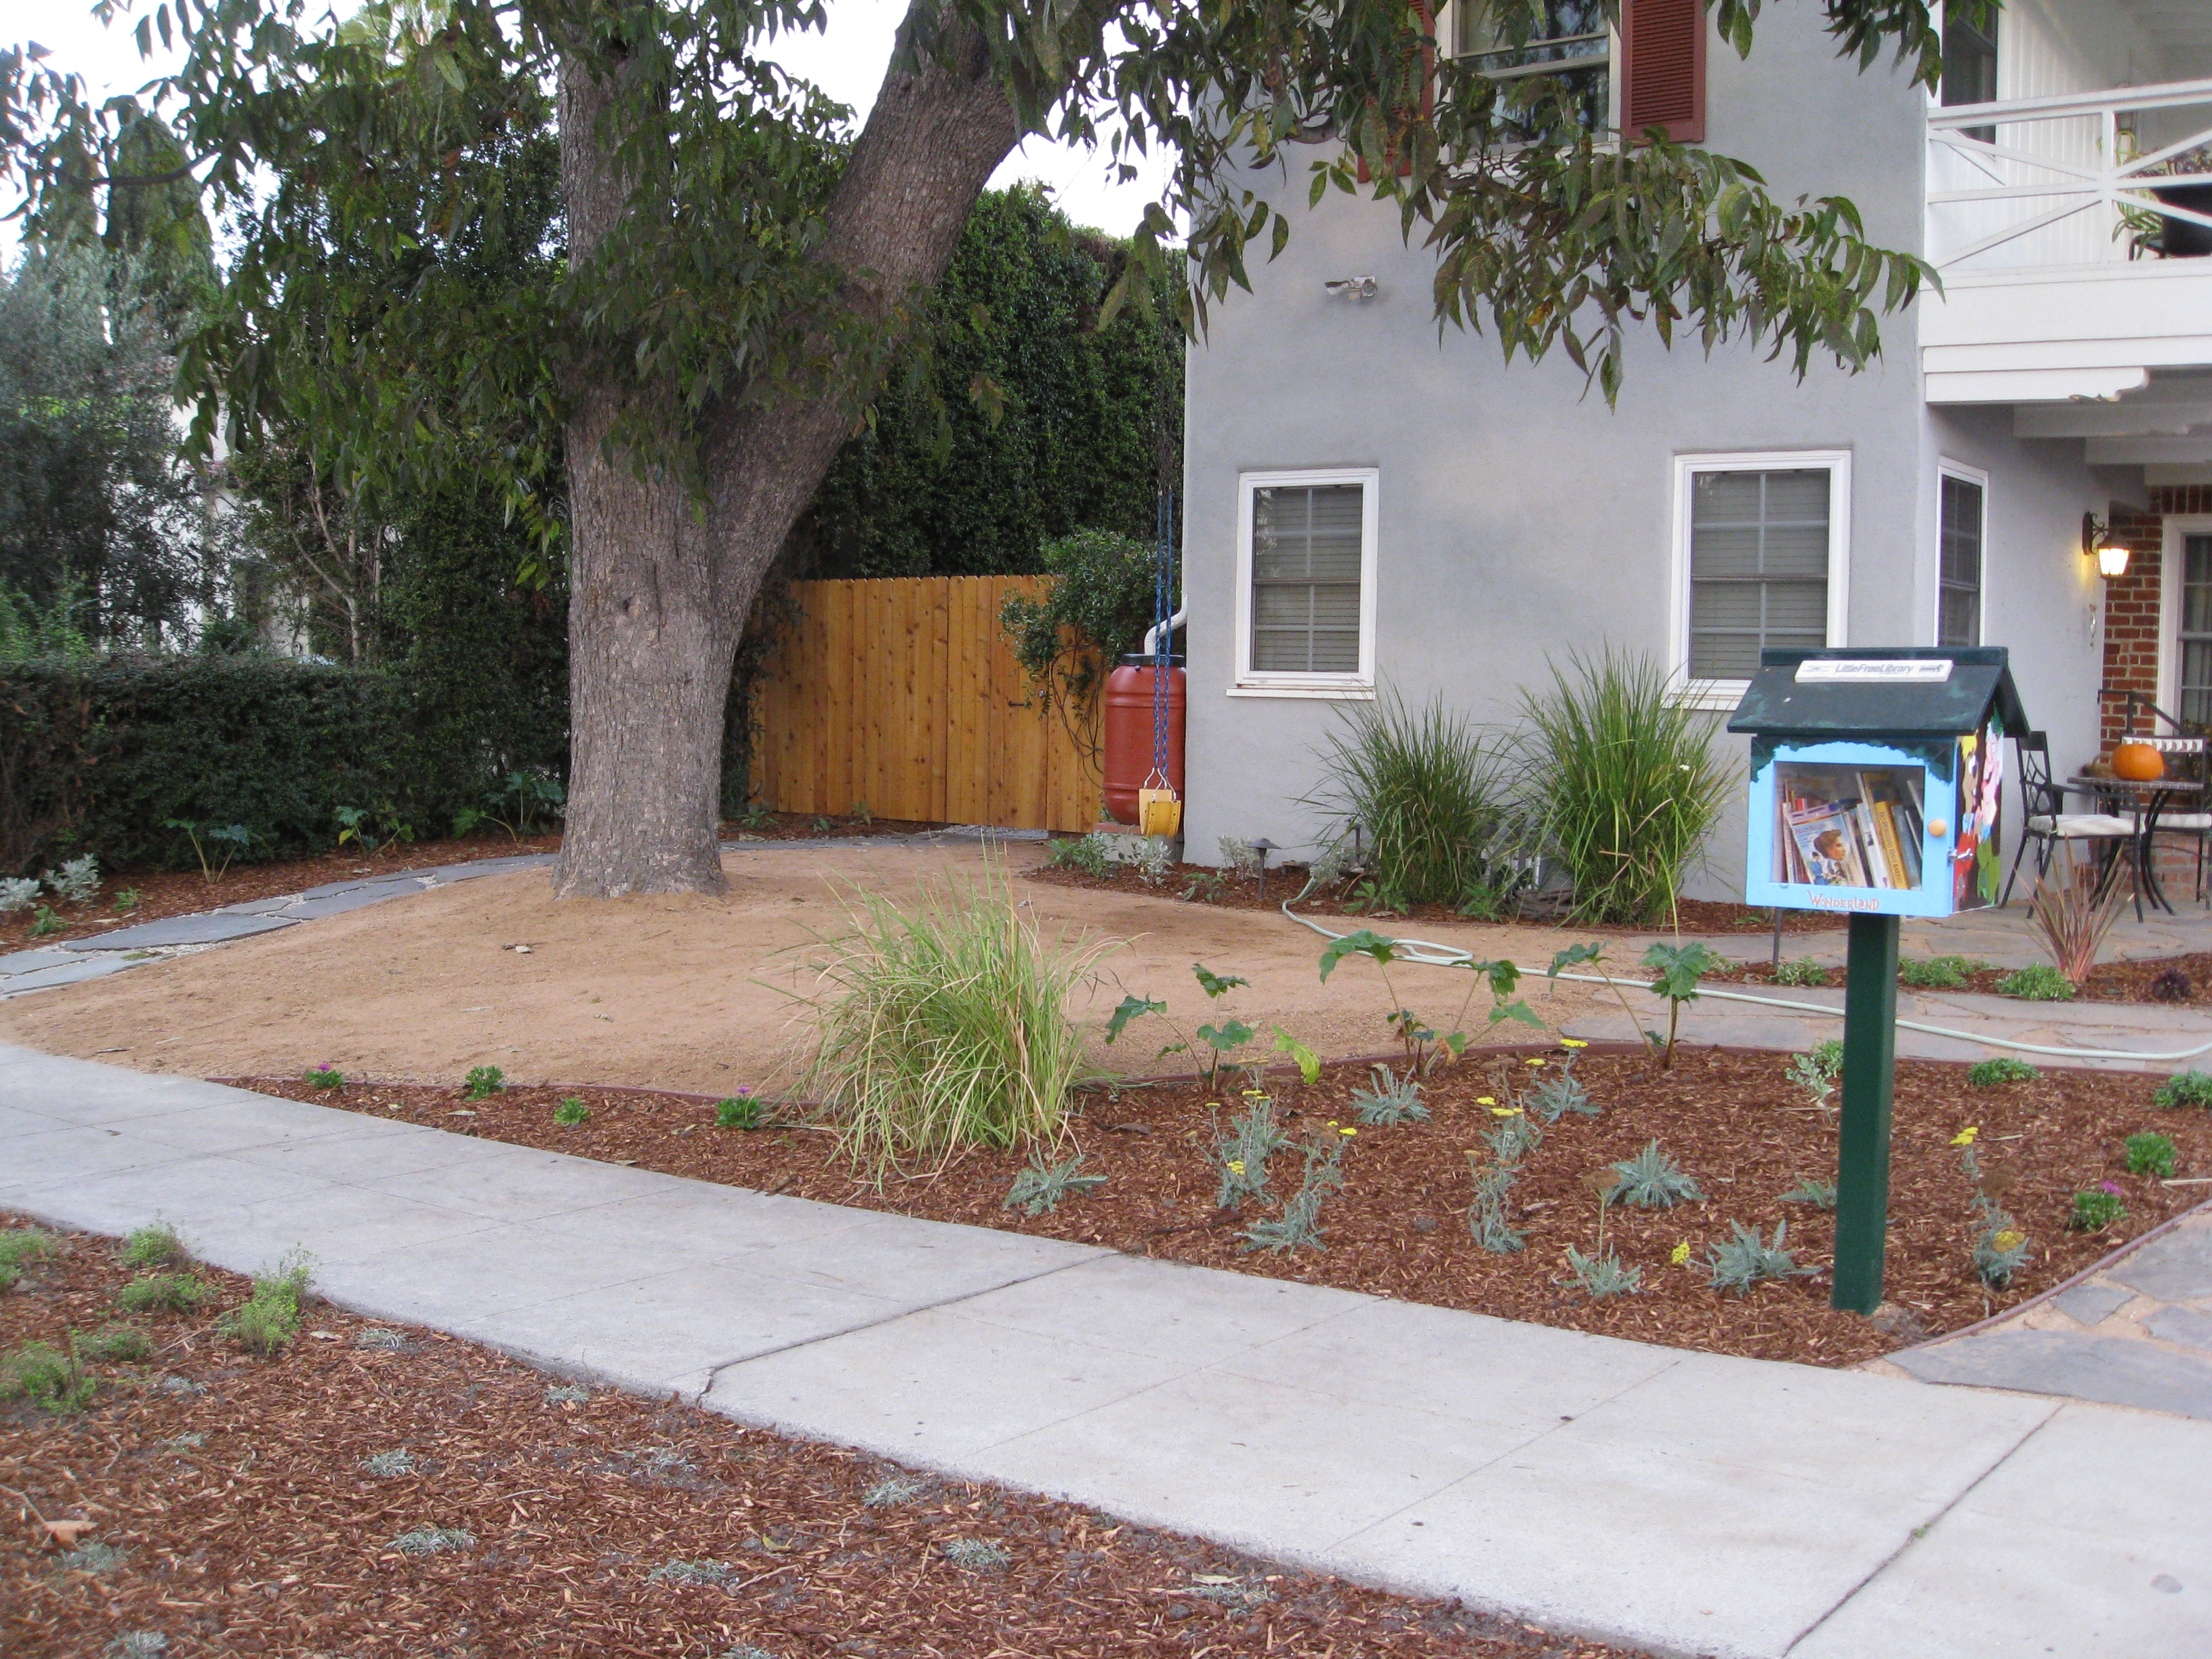 A Little Free Library welcomes guests.